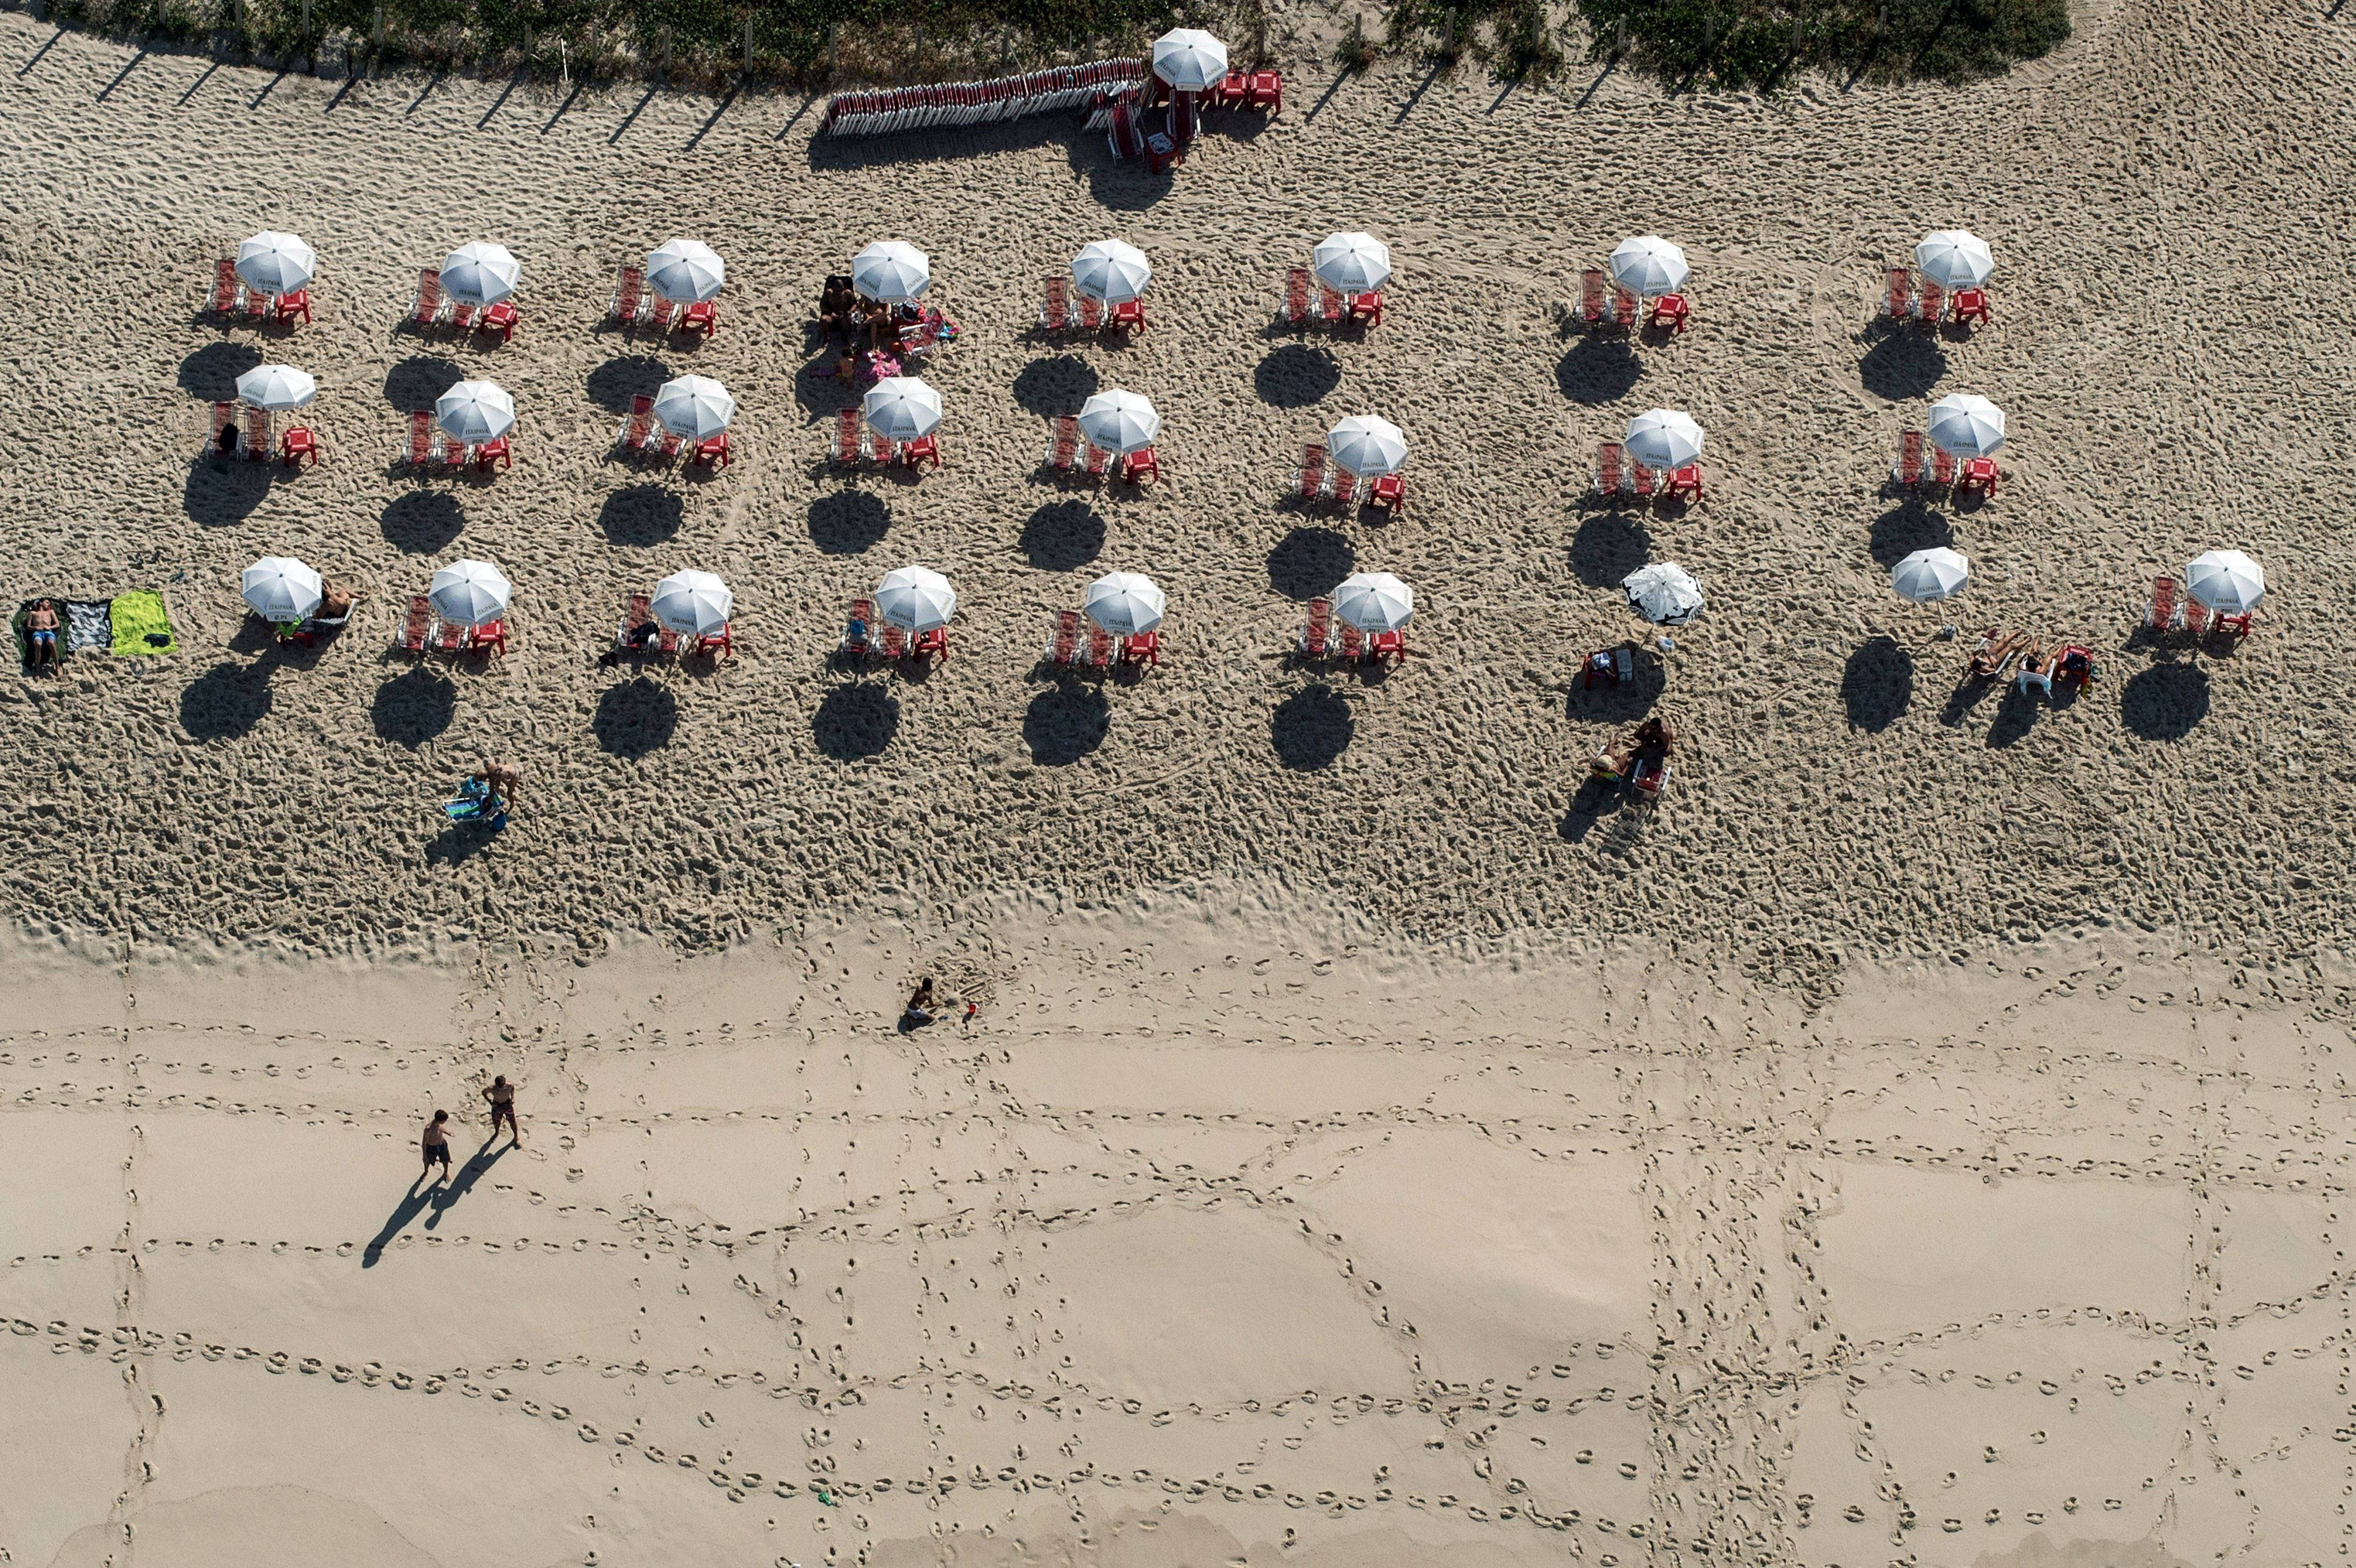 Slide 23 of 39: Aerial view of the beach at Barra da Tijuca in Rio de Janeiro, Brazil, on June 28, 2014. AFP PHOTO / YASUYOSHI CHIBA        (Photo credit should read YASUYOSHI CHIBA/AFP/Getty Images)